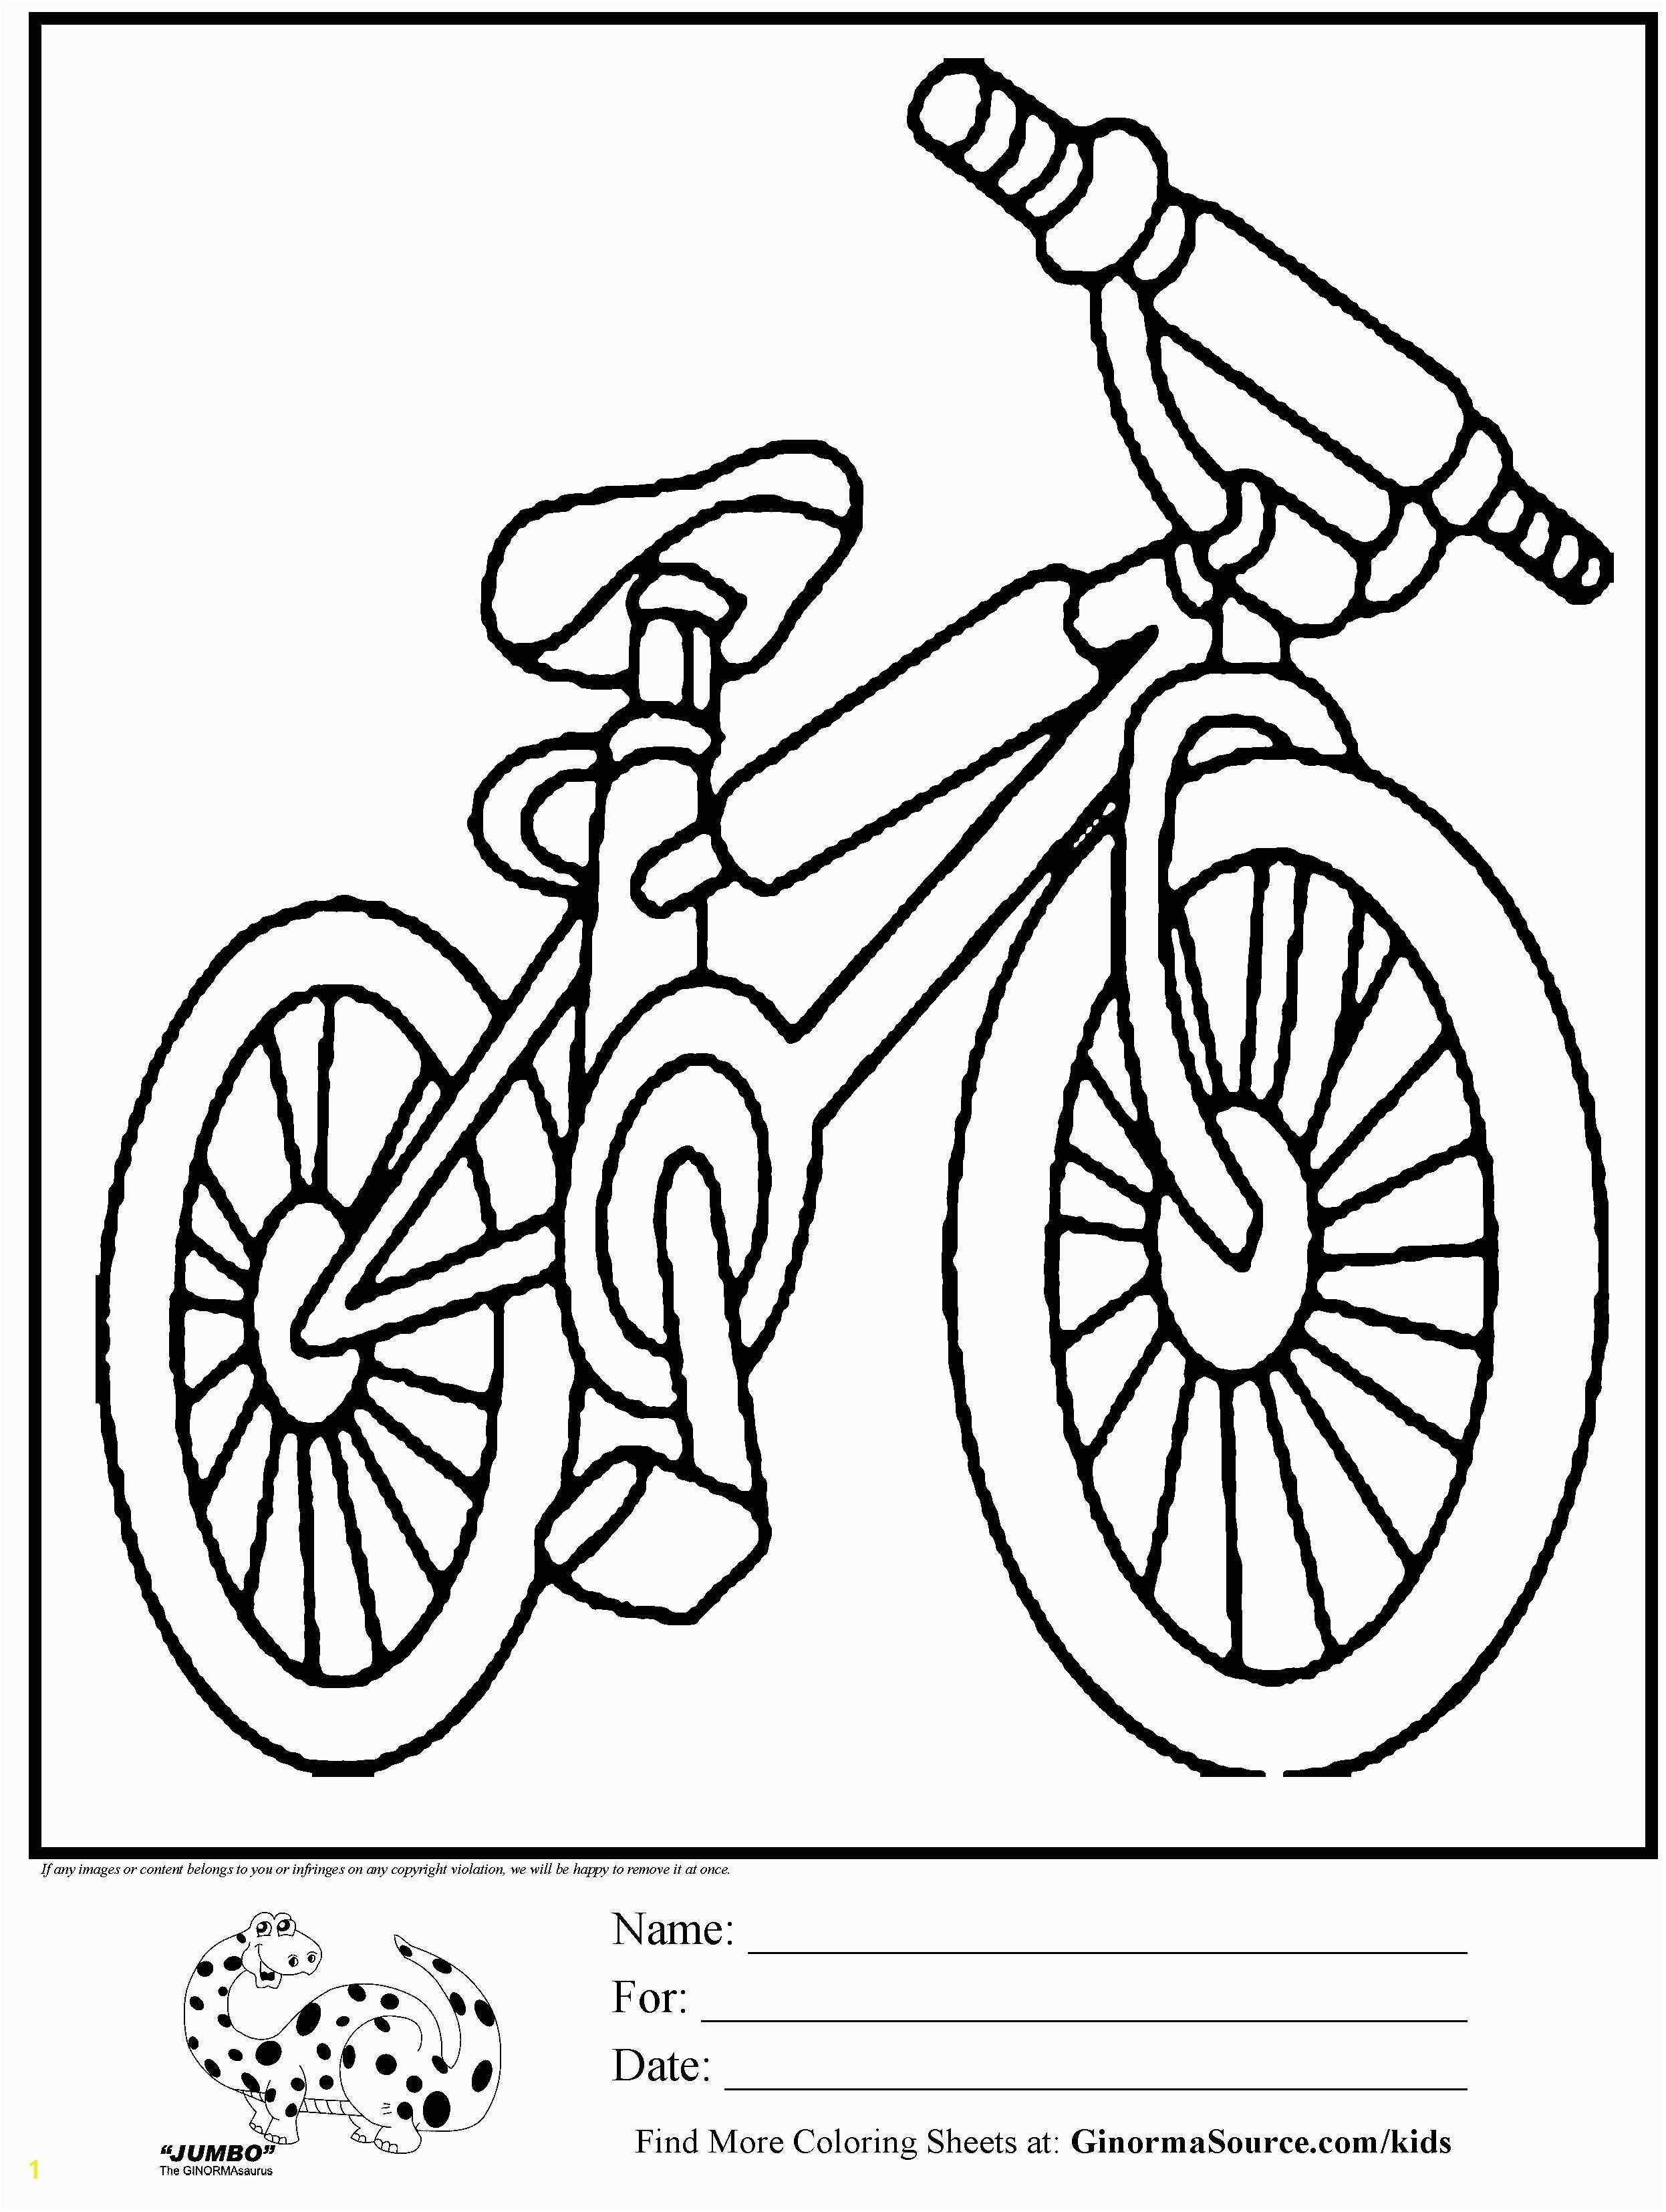 Elegant Image Of Bike Coloring Pages Coloring Pages Bmx Bikes